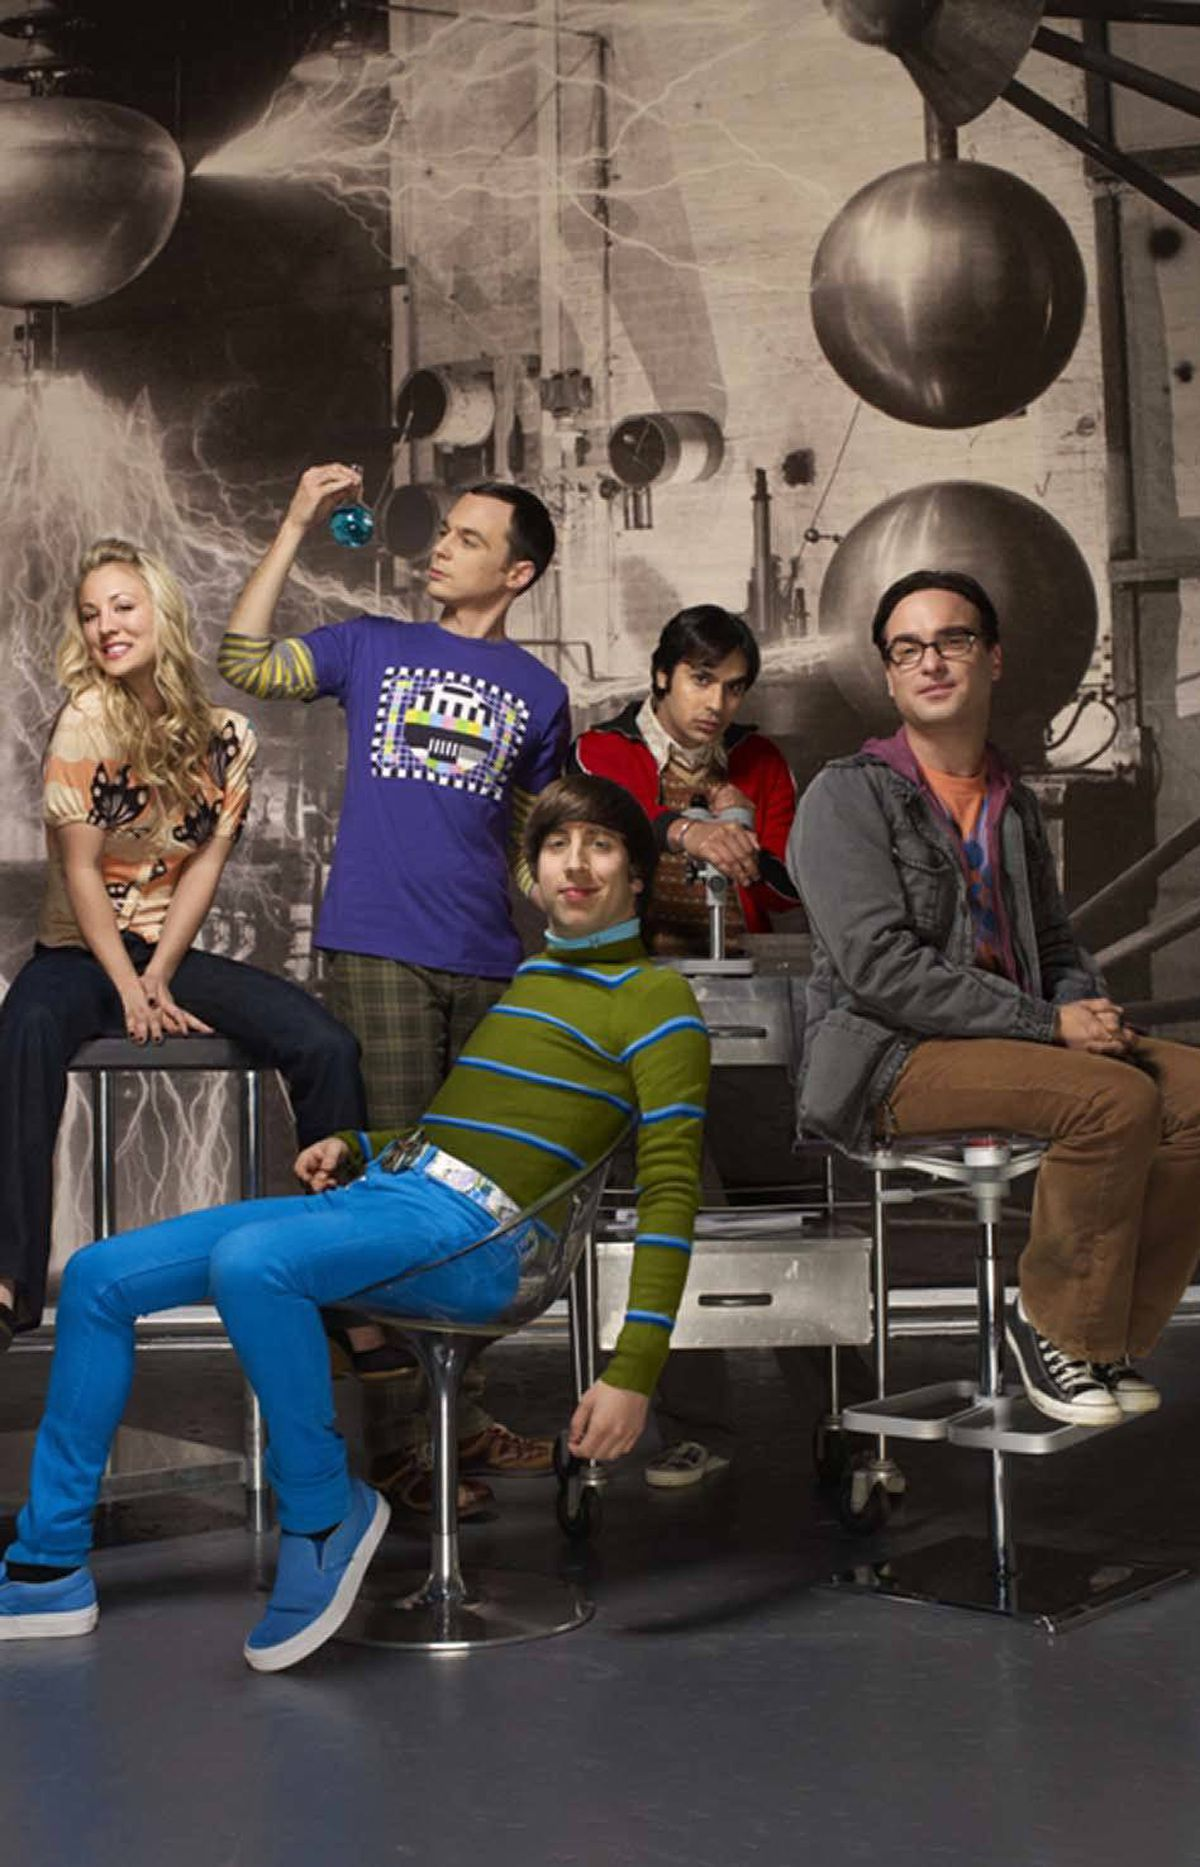 "COMEDY The Big Bang Theory CBS, CTV, 8 p.m. ET/PT This show is already the most-watched sitcom on network television, but are the producers trying to spike ratings higher with a return love connection between Leonard (Johnny Galecki) and Penny (Kaley Cuoco)? The dour physicist and the hot blond waitress were pretty hot and heavy a few seasons ago, then reverted to their previous platonic-neighbor relationship. And then last week, Leonard asked out Penny for a romantic dinner. To test their compatibility via scientific method, they agree to try out the modern concept of ""dating,"" much to the chagrin of Sheldon (Jim Parsons). In other news, Raj (Kunan Nayyar) fosters a physical attachment to his cellphone's virtual assistant. Ah, those wacky nerds."